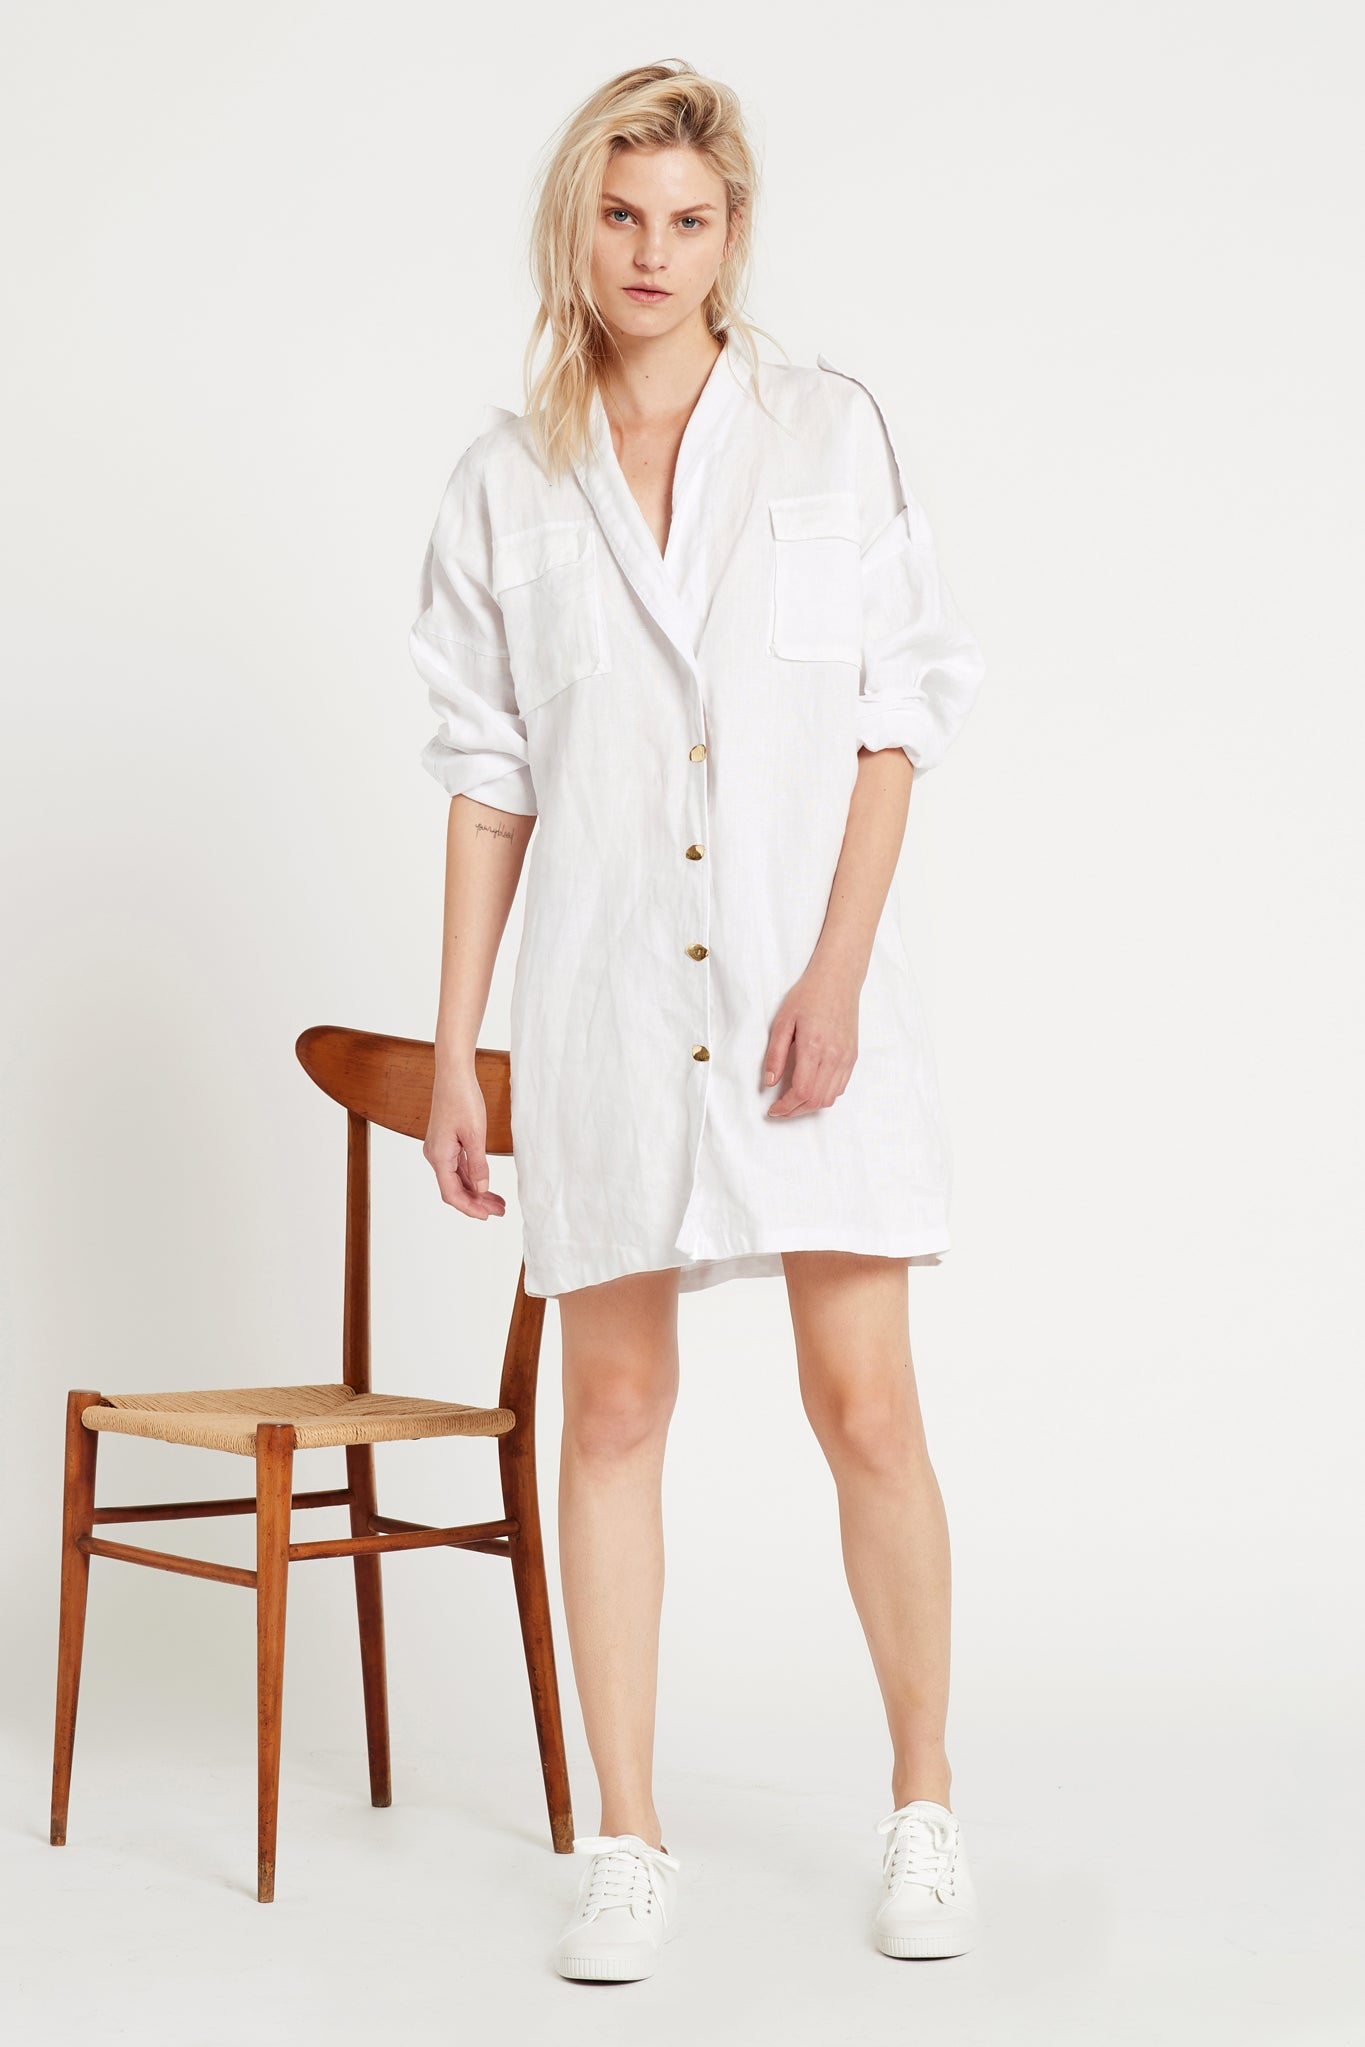 Aje Logo Shirt Dress Outfit View